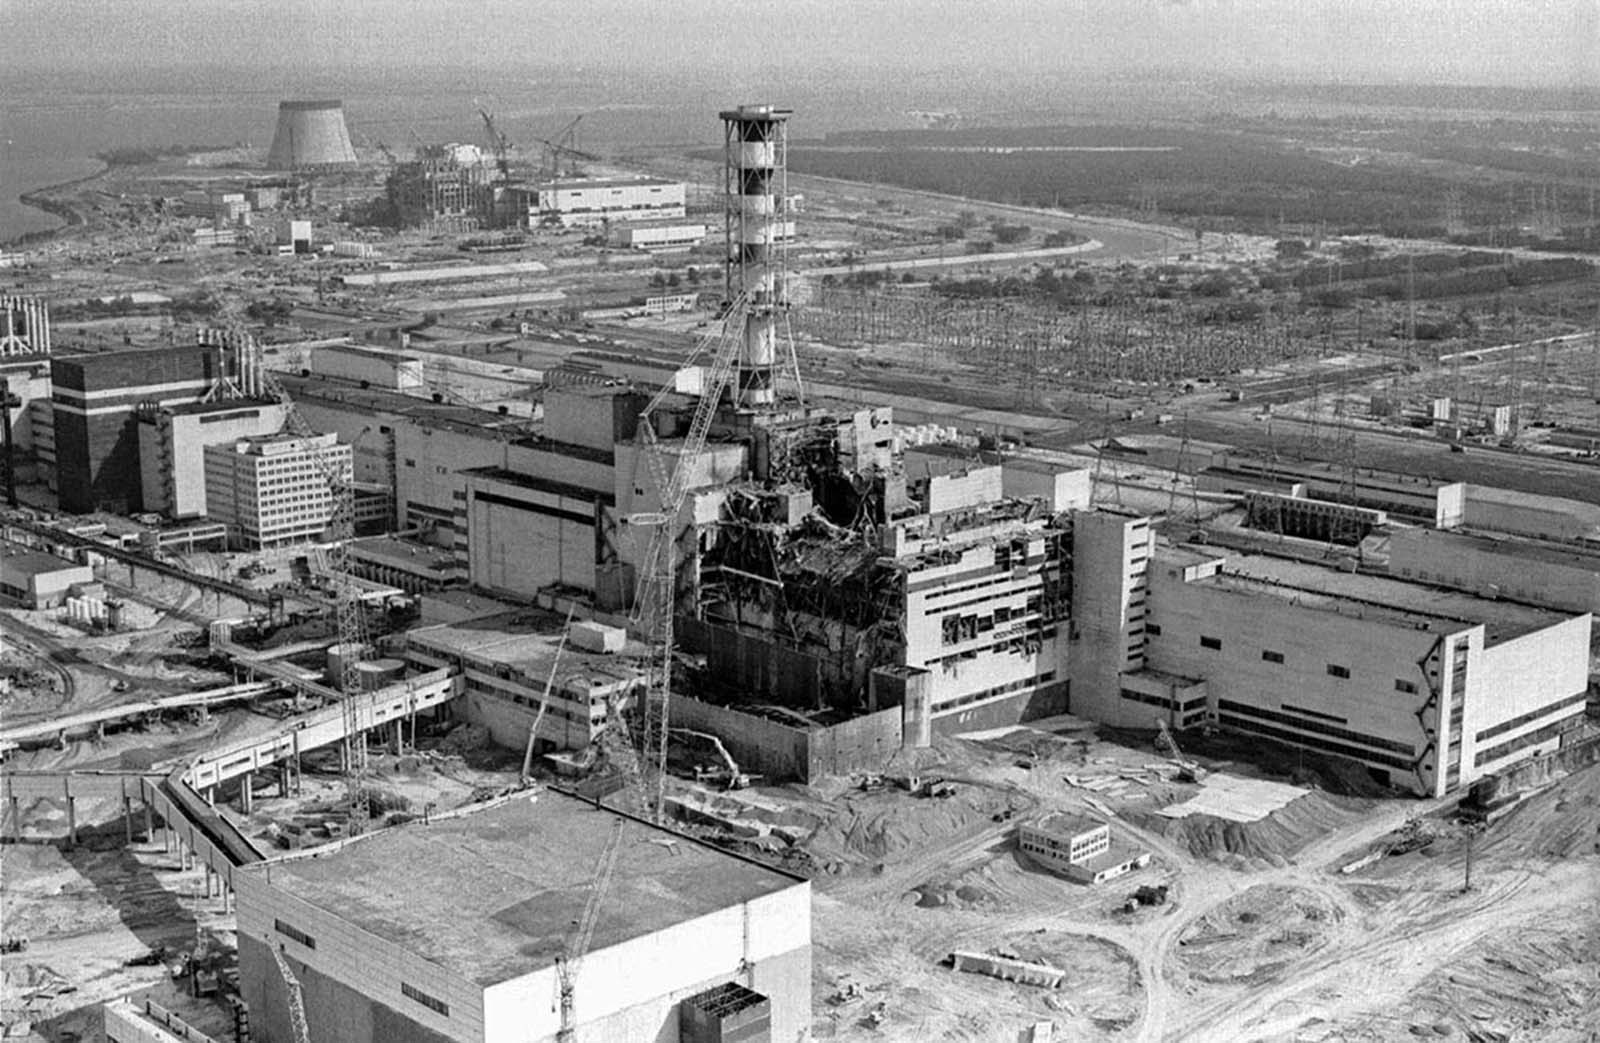 An aerial view of the damaged Chernobyl nuclear plant undergoing repair and containment work in 1986.